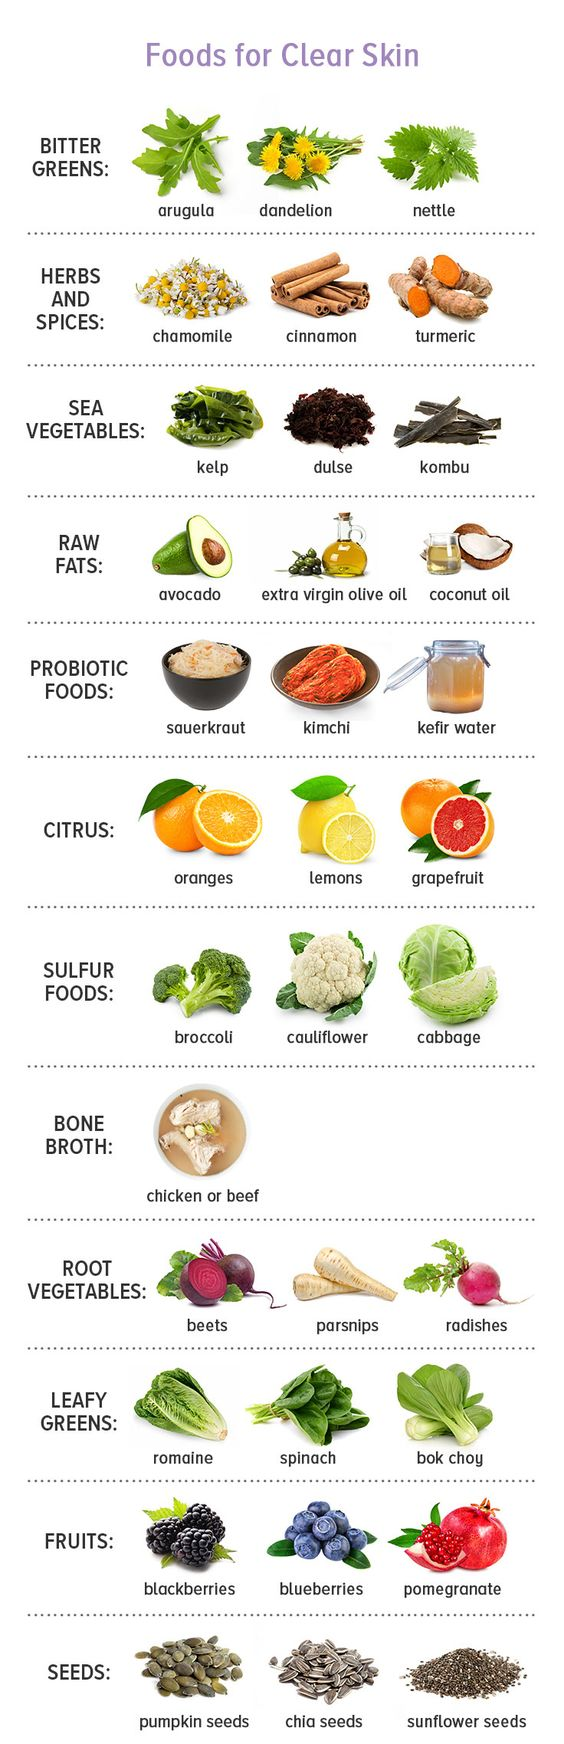 Foods for clear skin